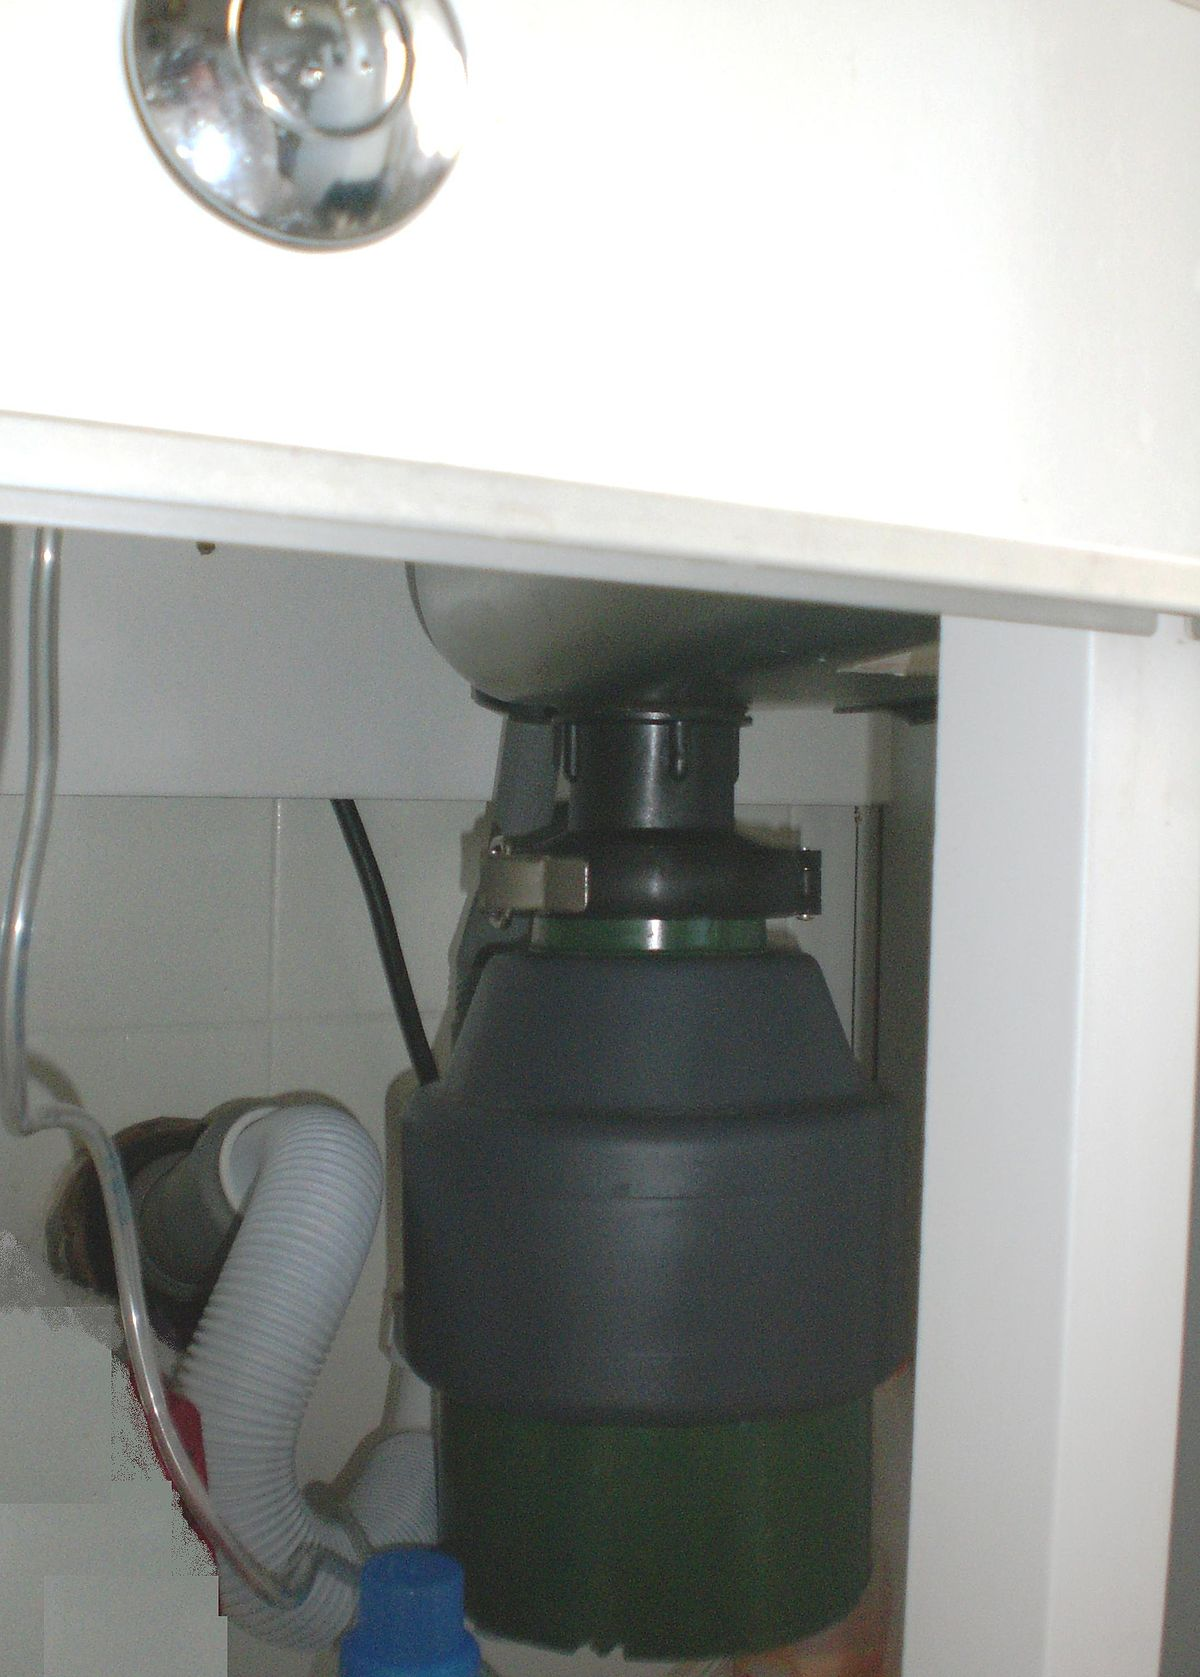 Garbage disposal unit